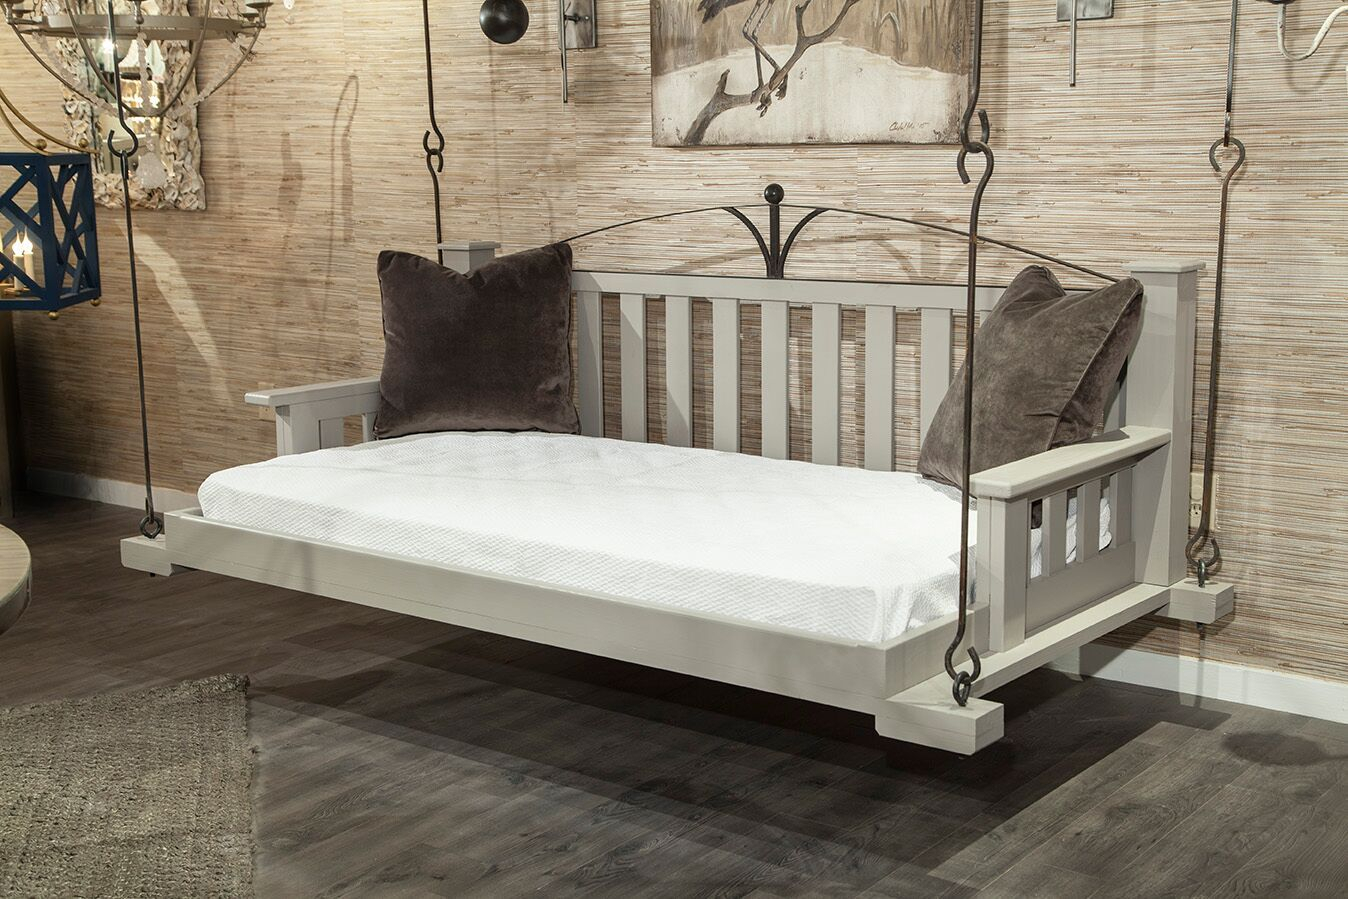 Lco F10 Arch Swinging Day Bed In Mixed Material (View 18 of 25)